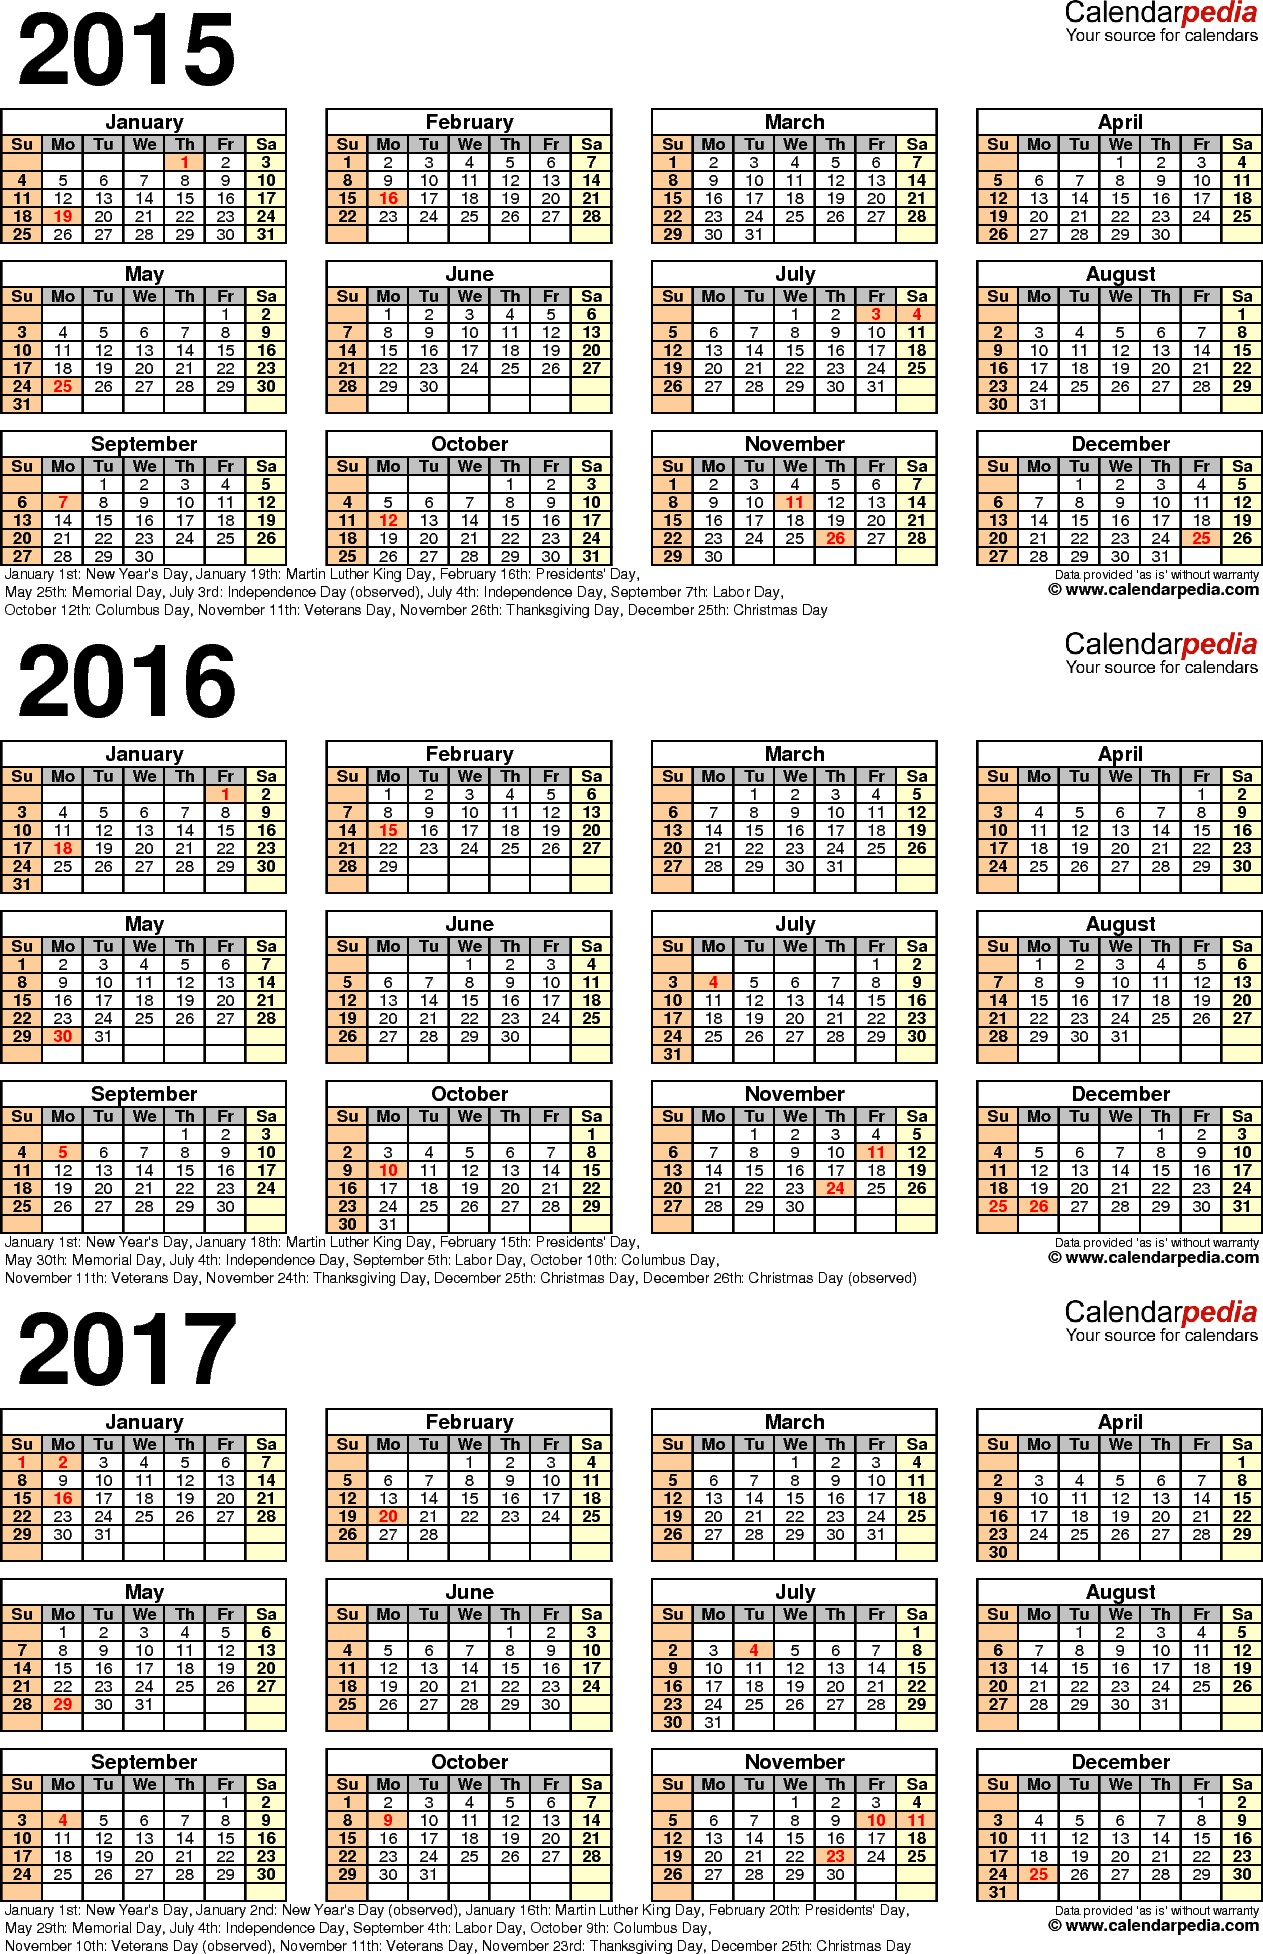 March 2019 Calendar Uk Printable Más Caliente 2015 2016 2017 Calendar 4 Three Year Printable Pdf Calendars Of March 2019 Calendar Uk Printable Más Recientemente Liberado June 2019 Calendar Word Lara Expolicenciaslatam